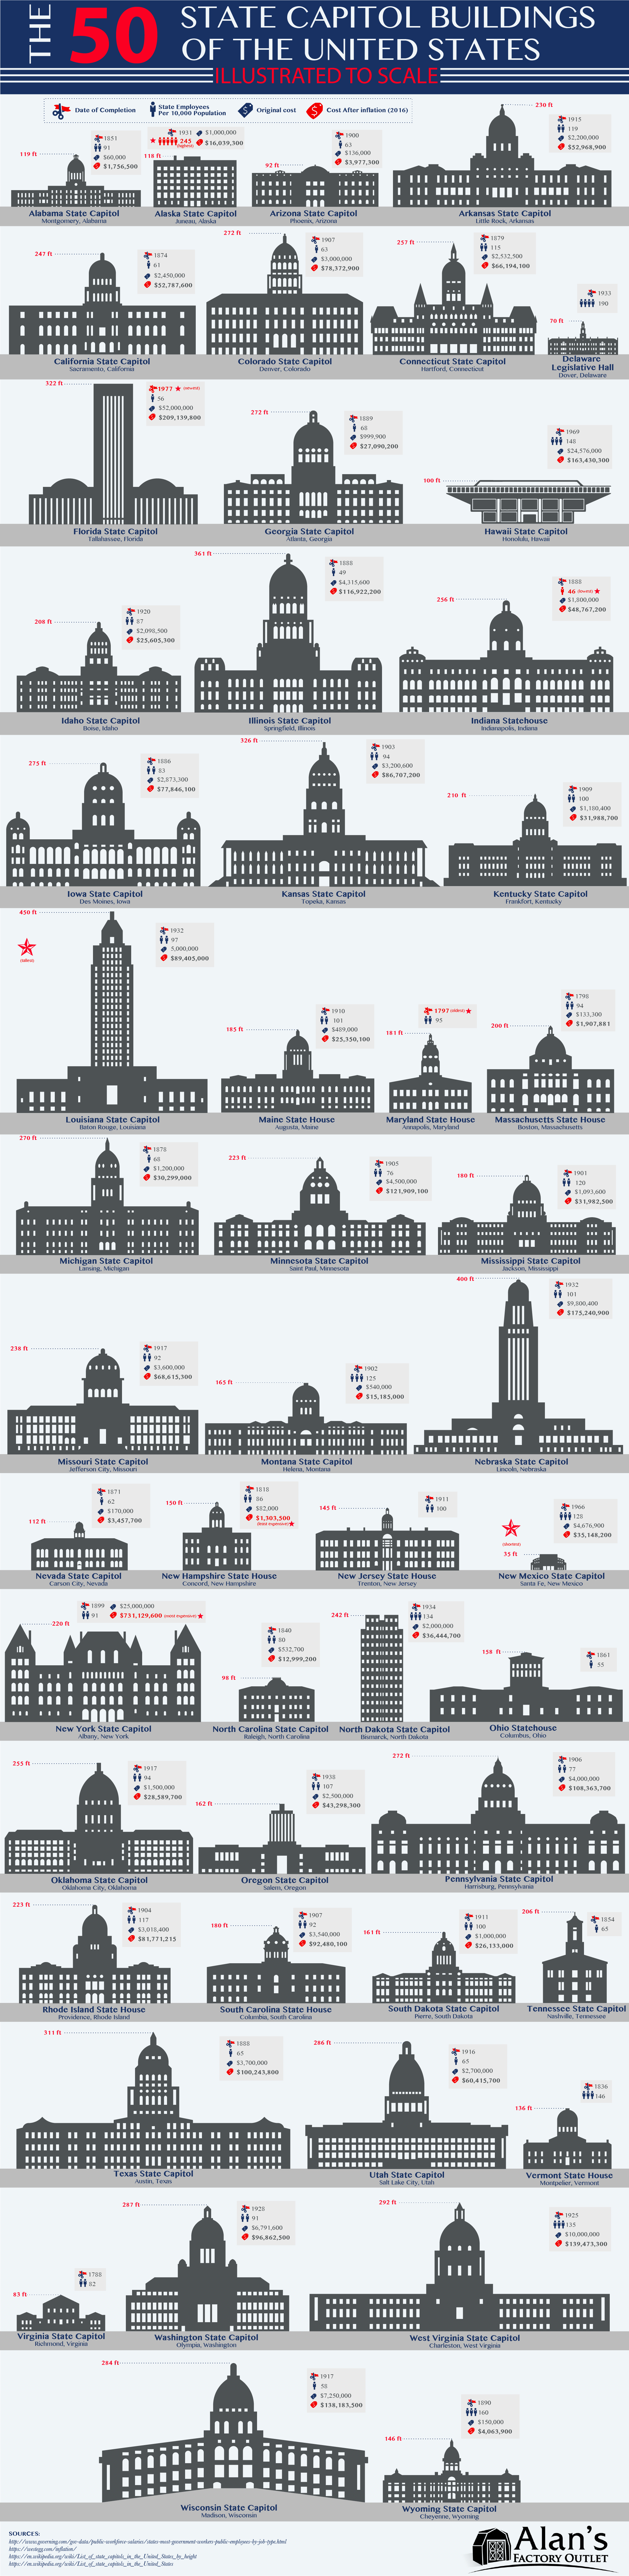 state-capitol-buildings-illustrated-to-scale-5_large.png